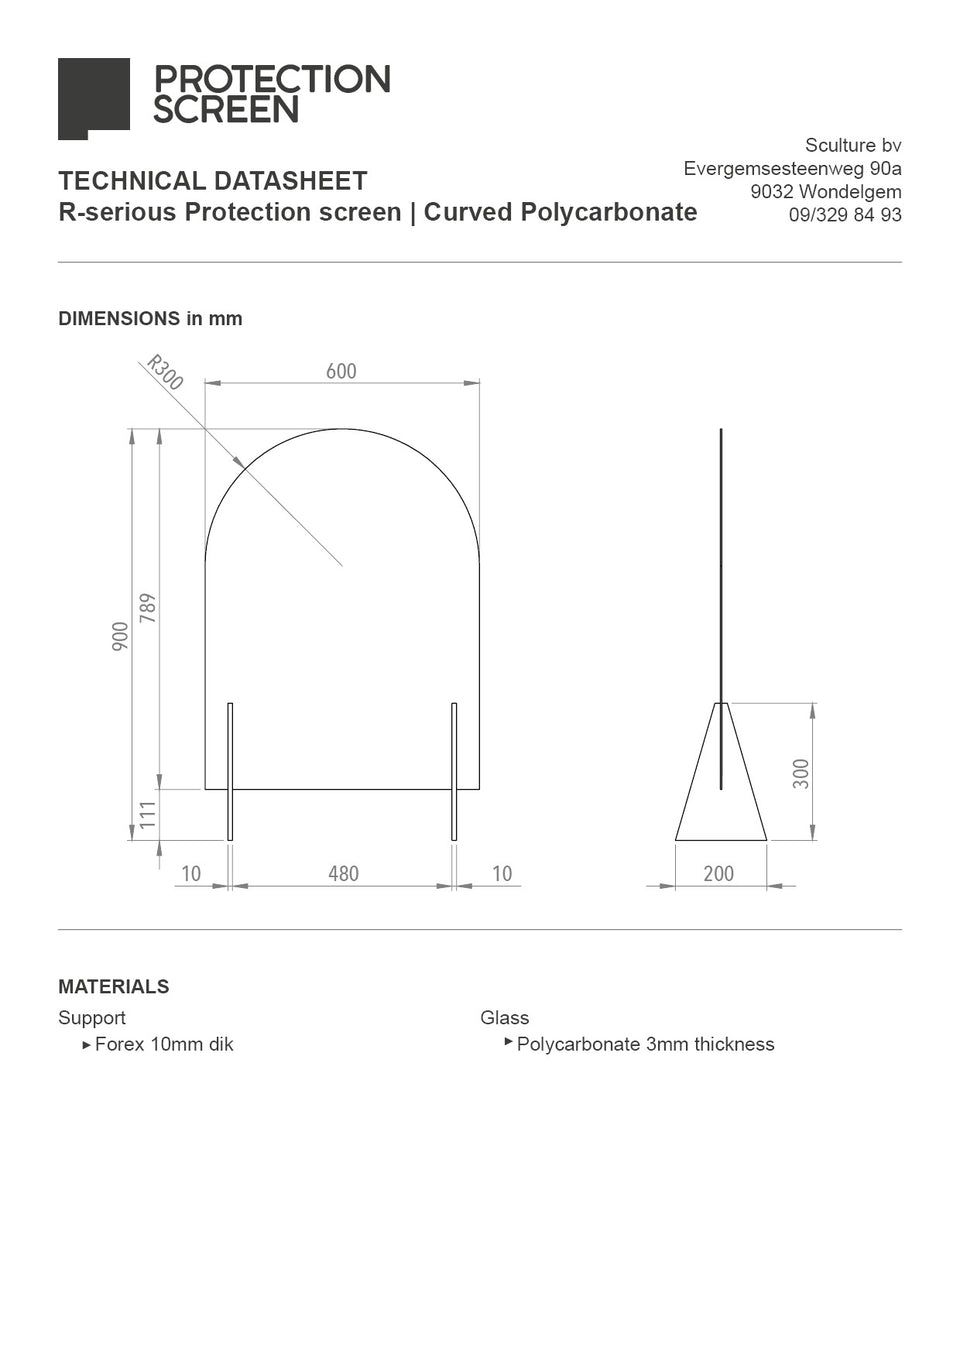 R-serious Protection Screen | Polycarbonate